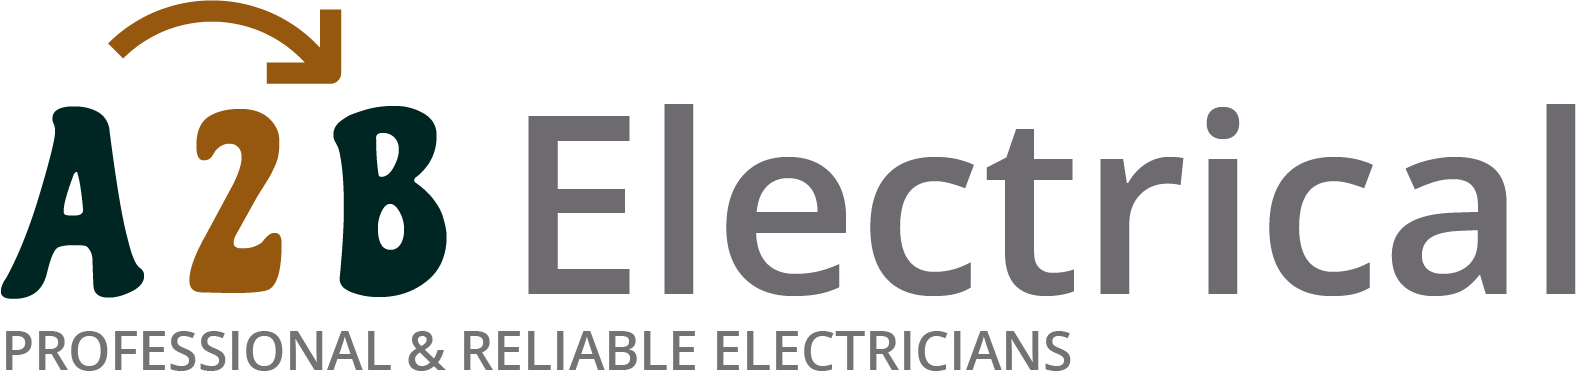 If you have electrical wiring problems in Hanwell, we can provide an electrician to have a look for you.